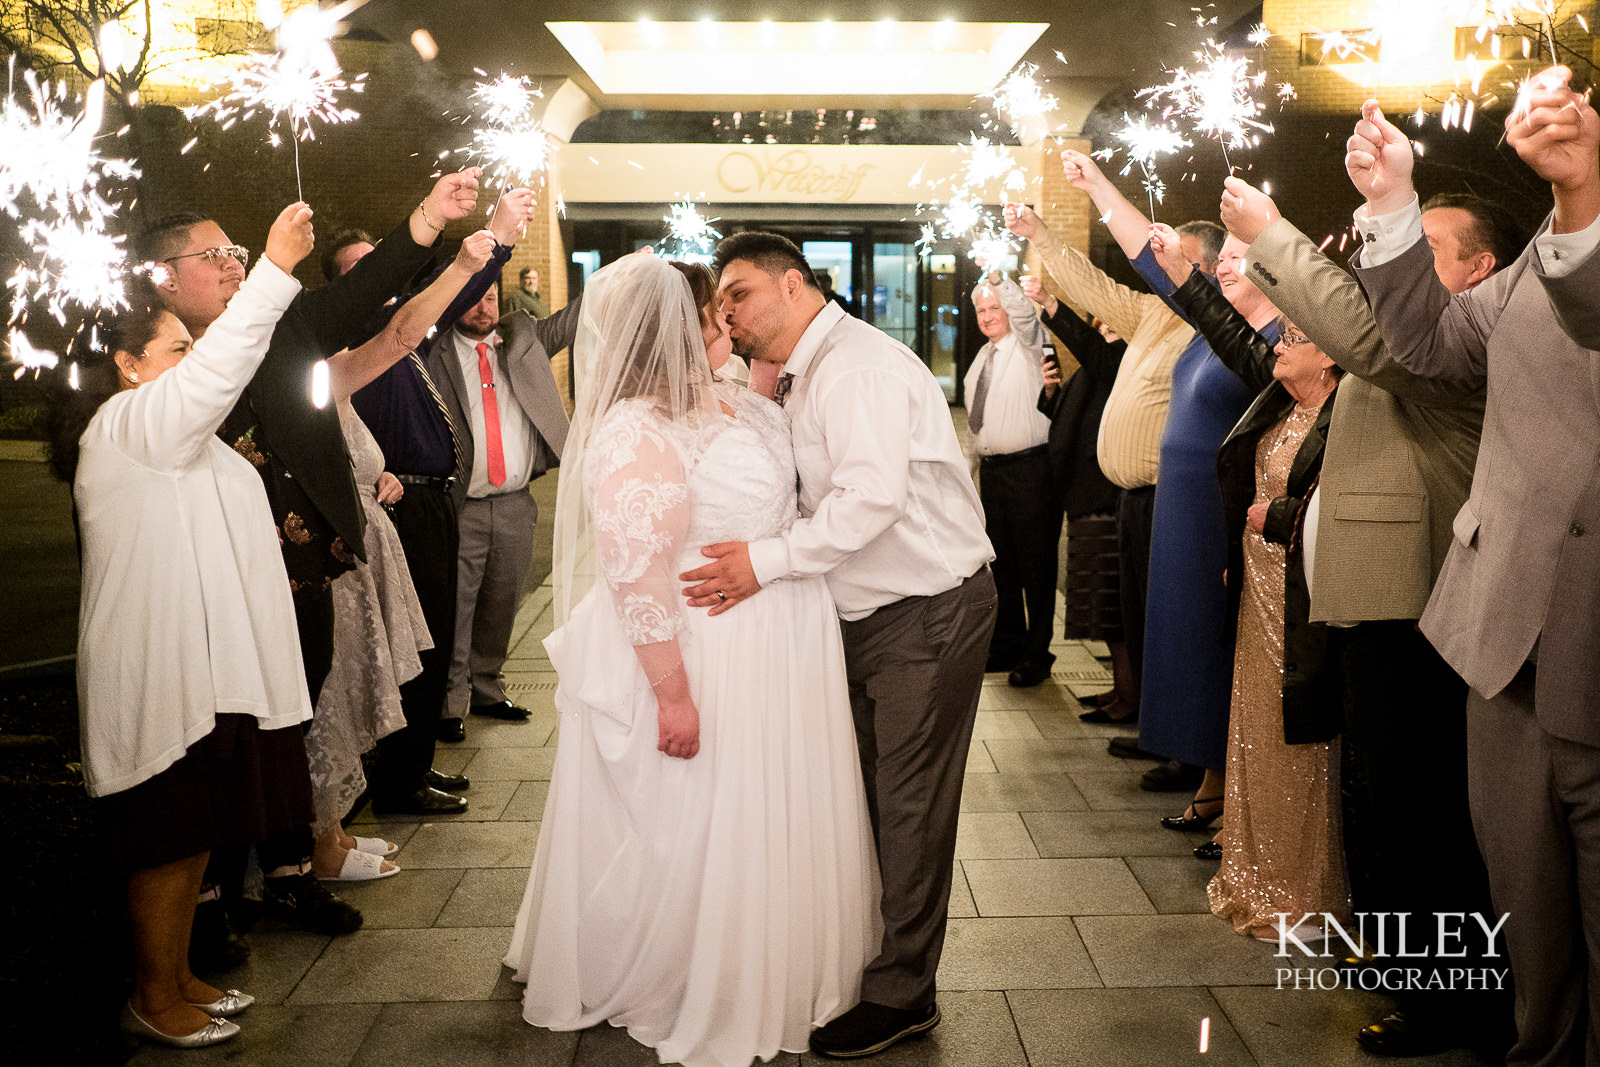 119 - Woodcliff Hotel - Rochester NY wedding photo - Kniley Photography.jpg